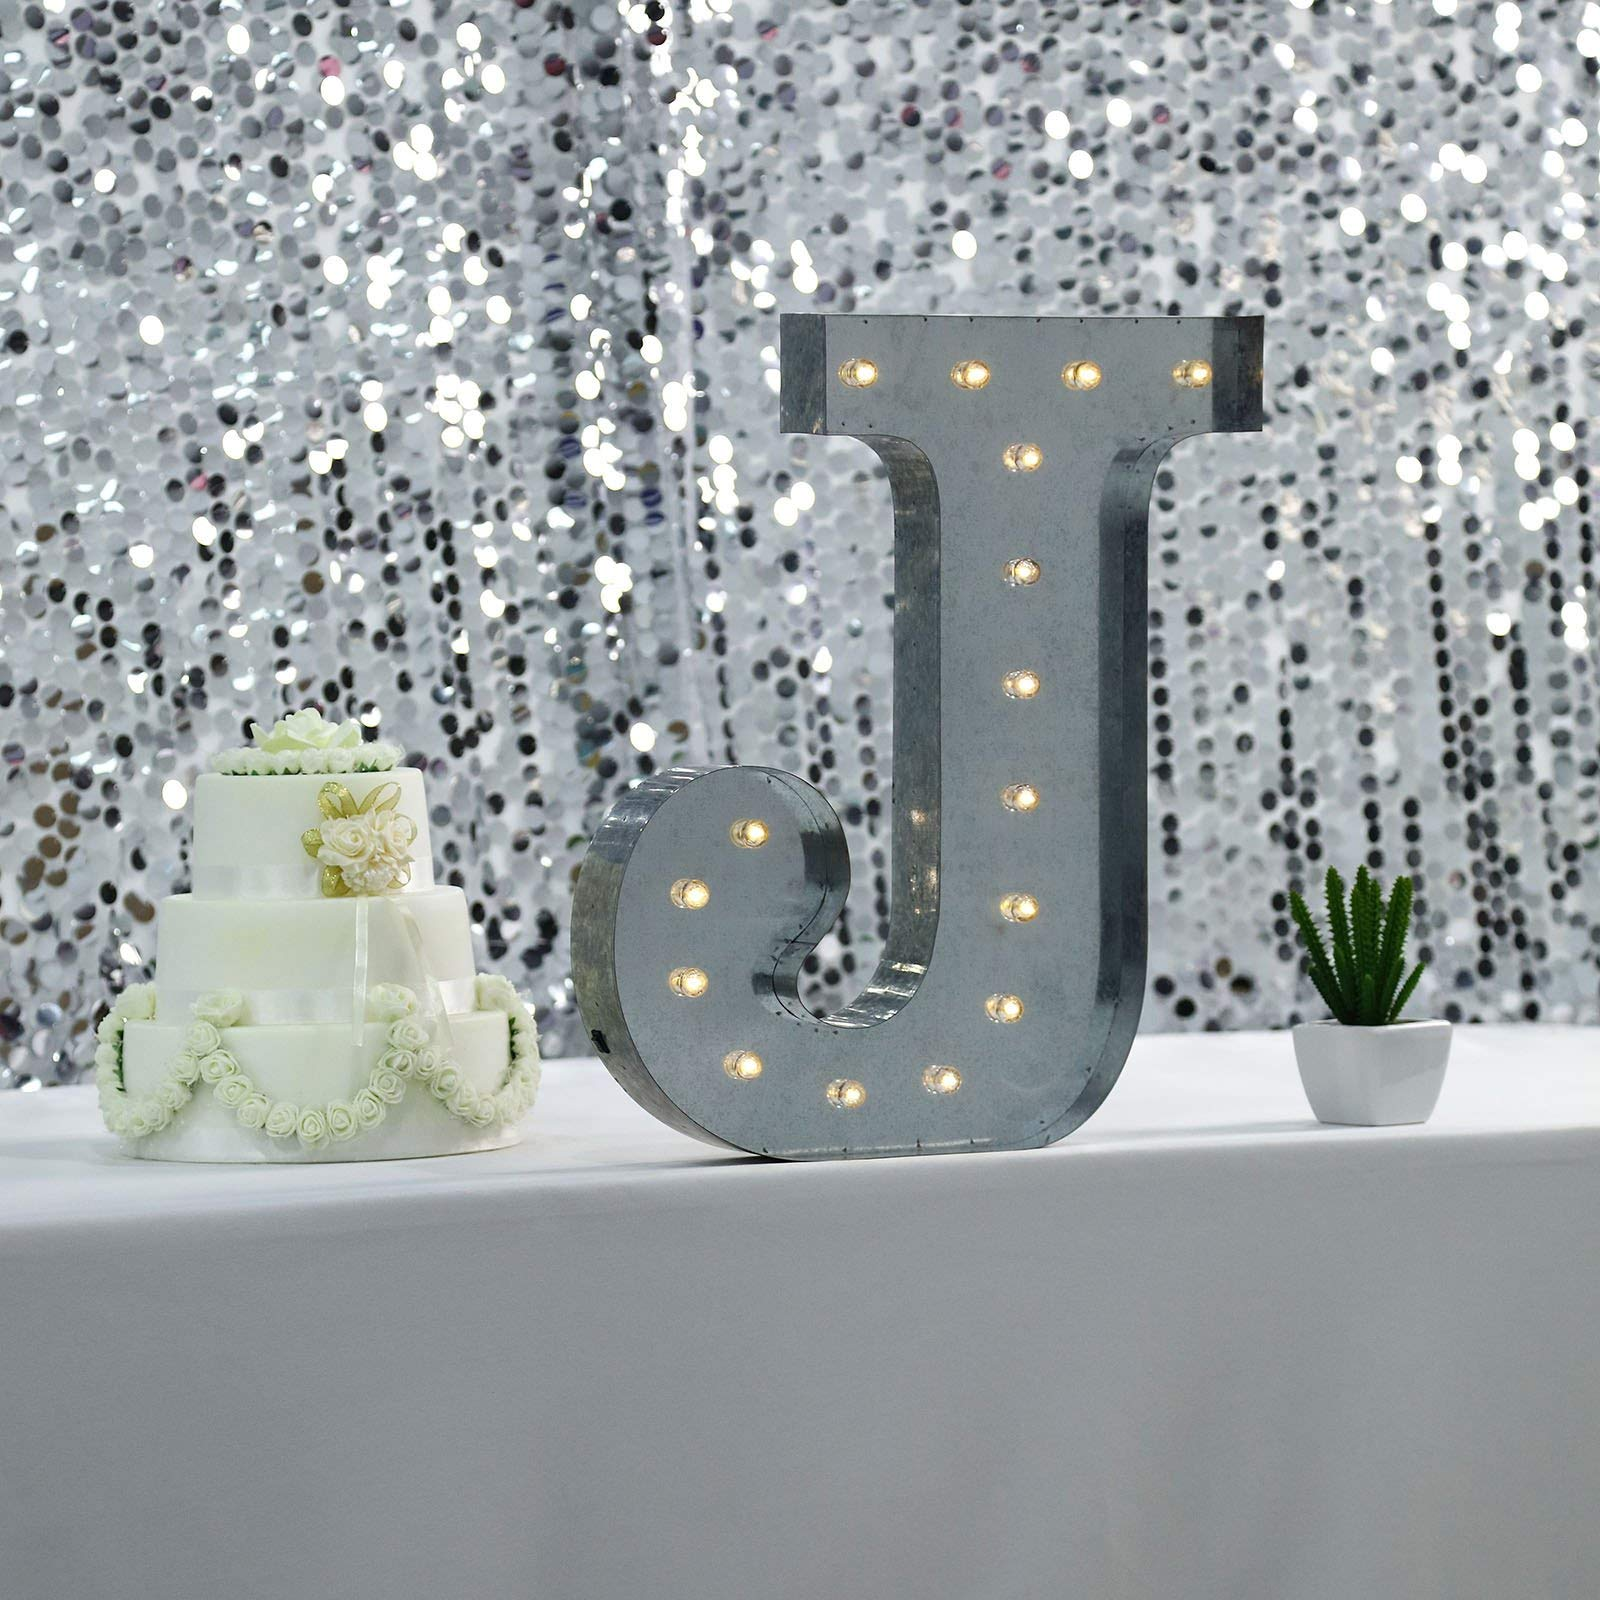 Tableclothsfactory 2 FT | Vintage Metal Marquee Letter Lights Cordless with 16 Warm White LED - J by Tableclothsfactory